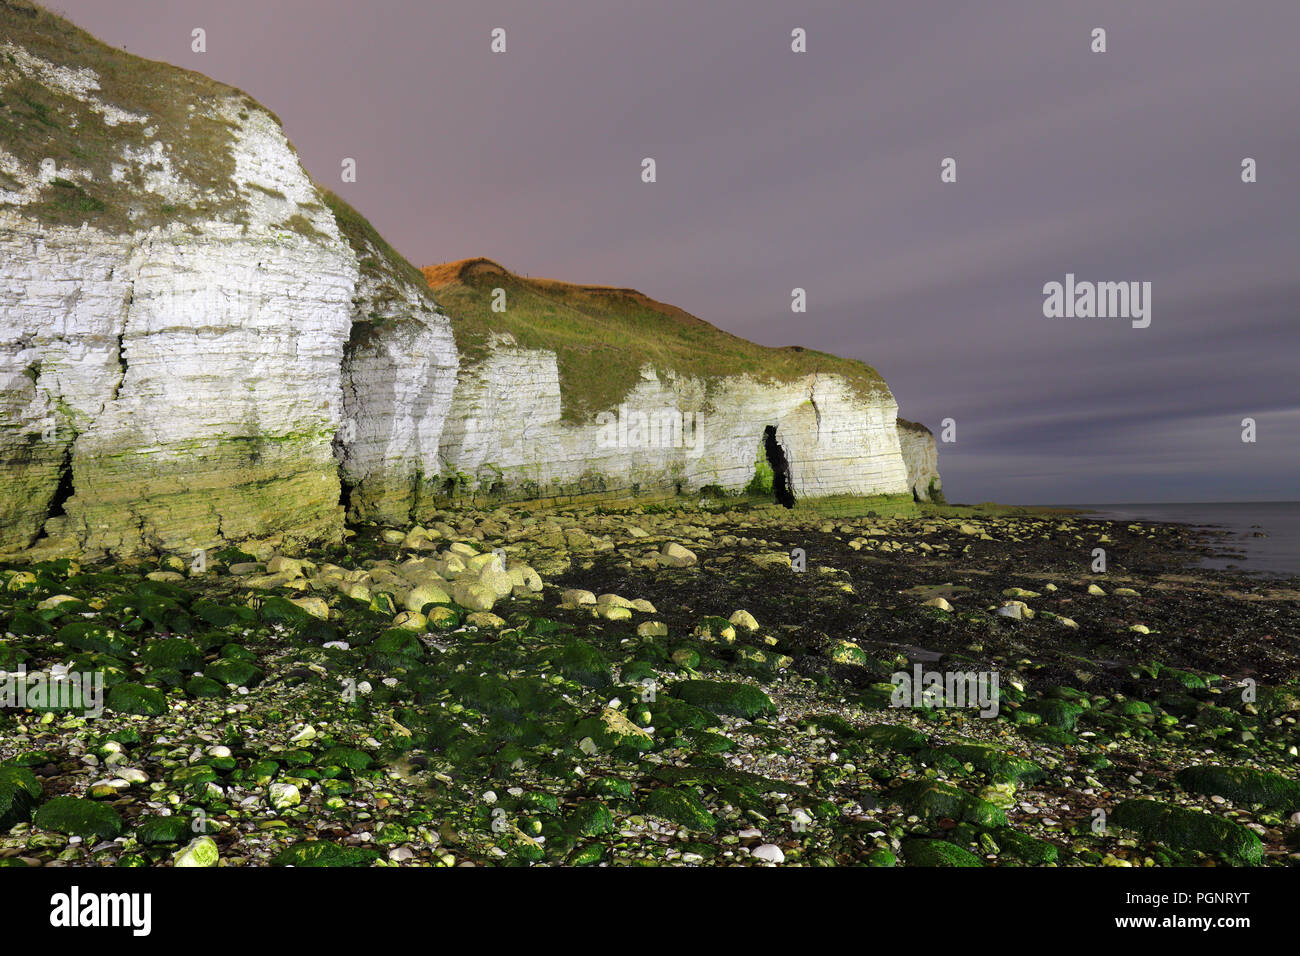 Cliffs & Caves at North Landing in Flamborough at night on the North Yorkshire Coastline Stock Photo